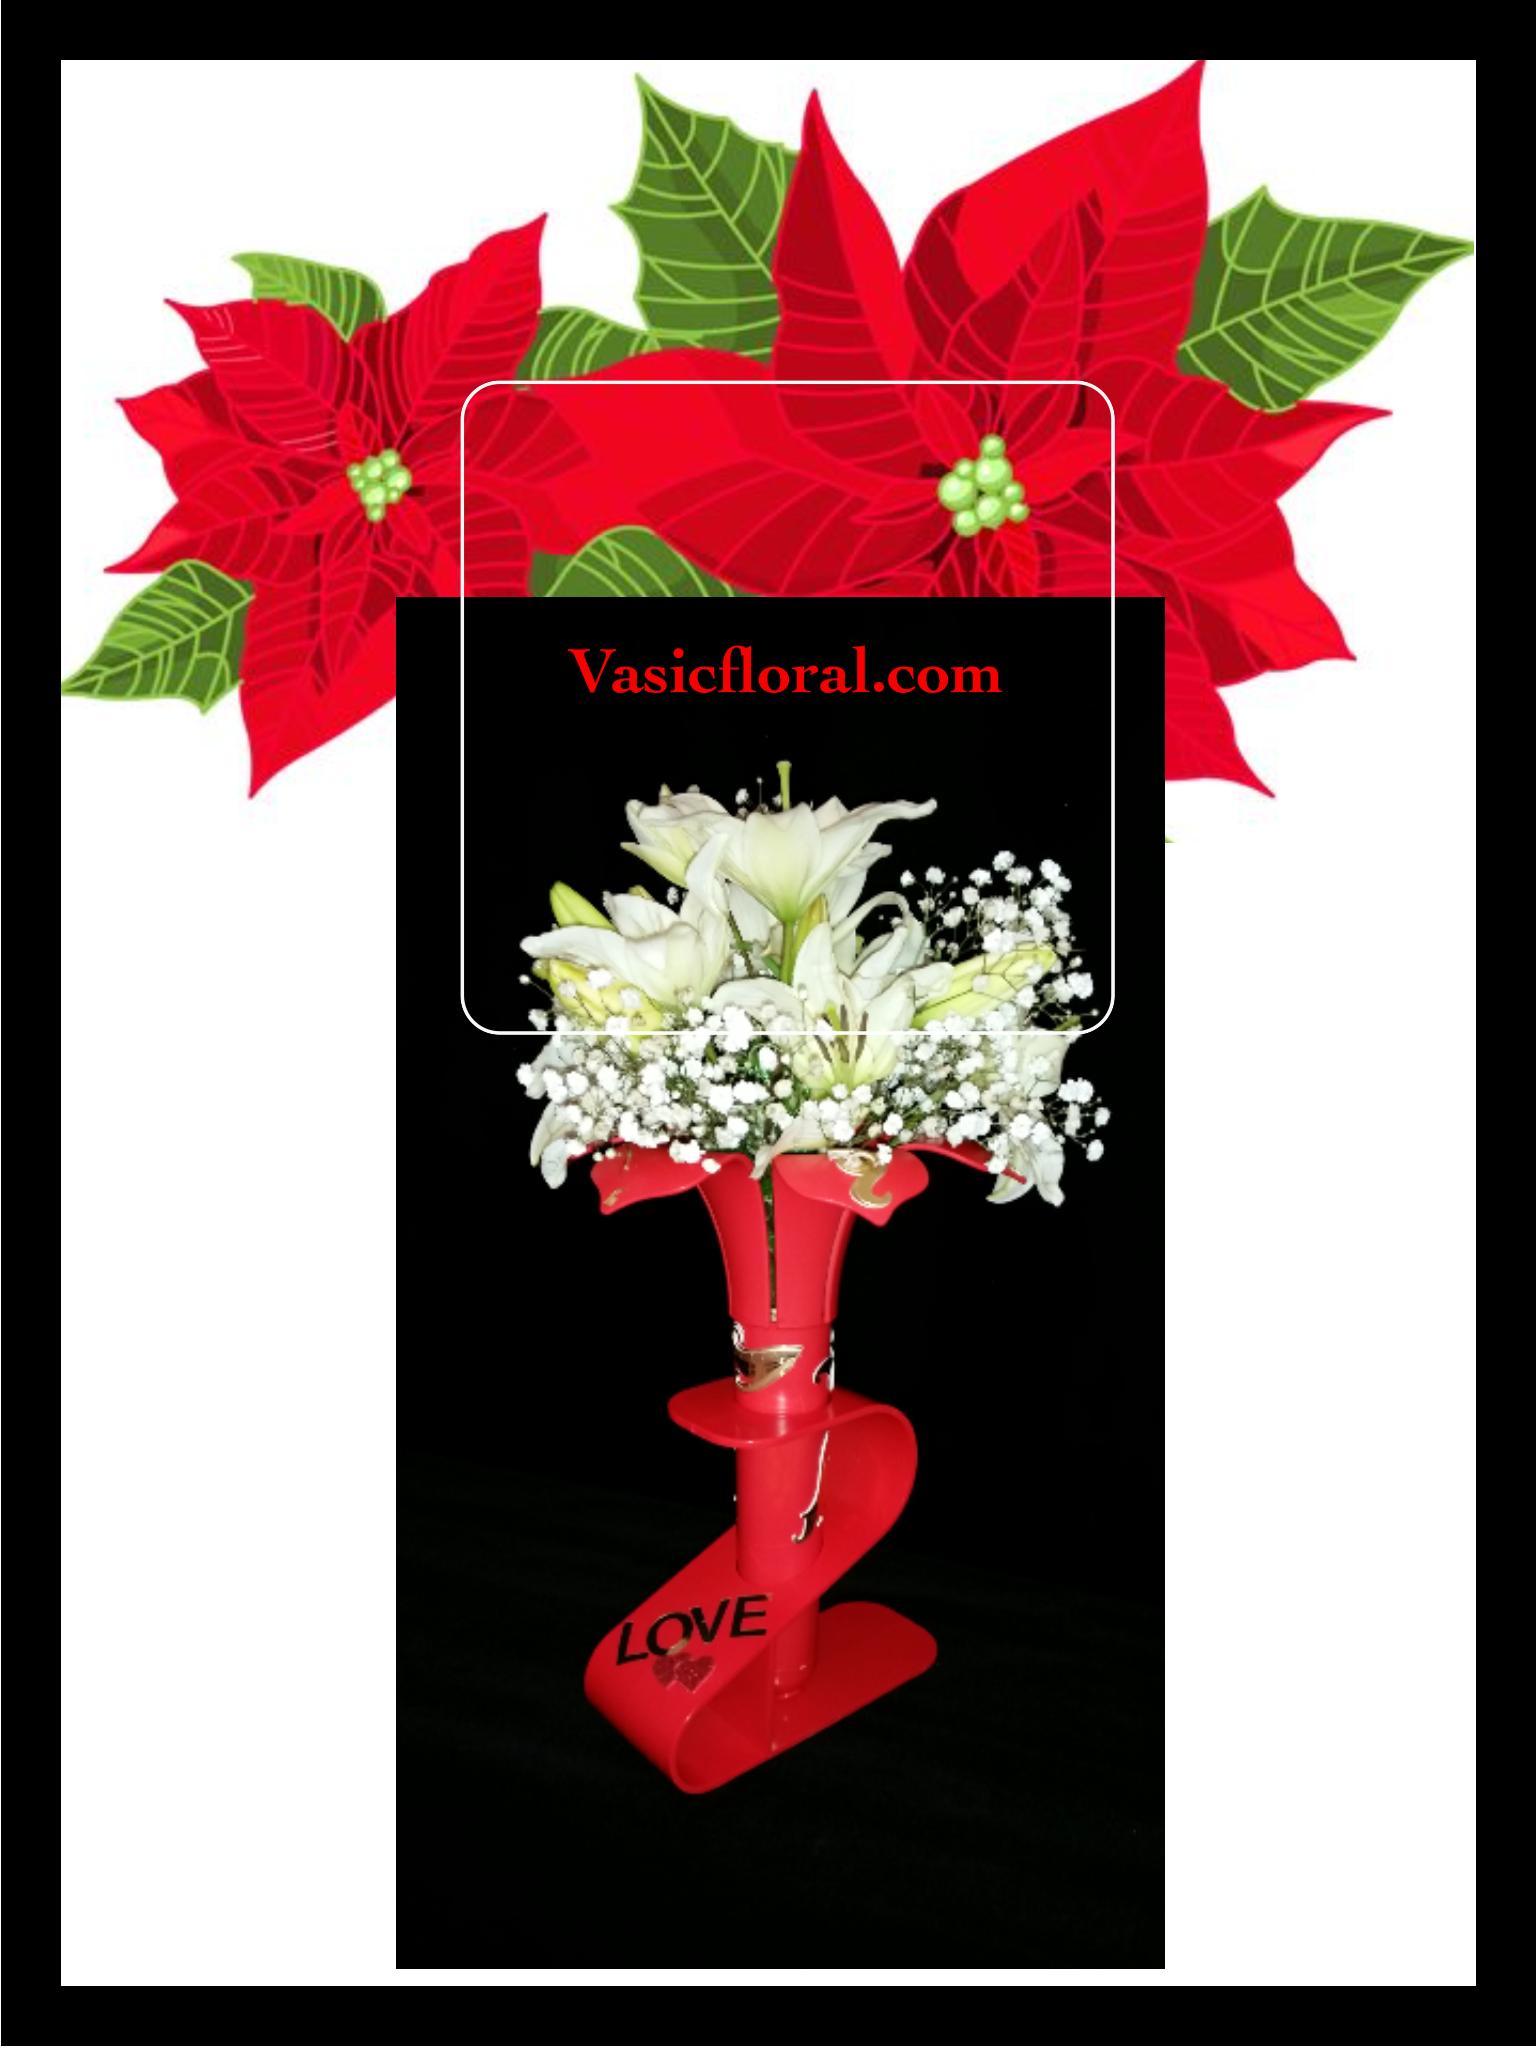 May the spirit of Christmas Enfold you in it's peace#vasicfloral.comholiday#christms#joy# gingle #happy